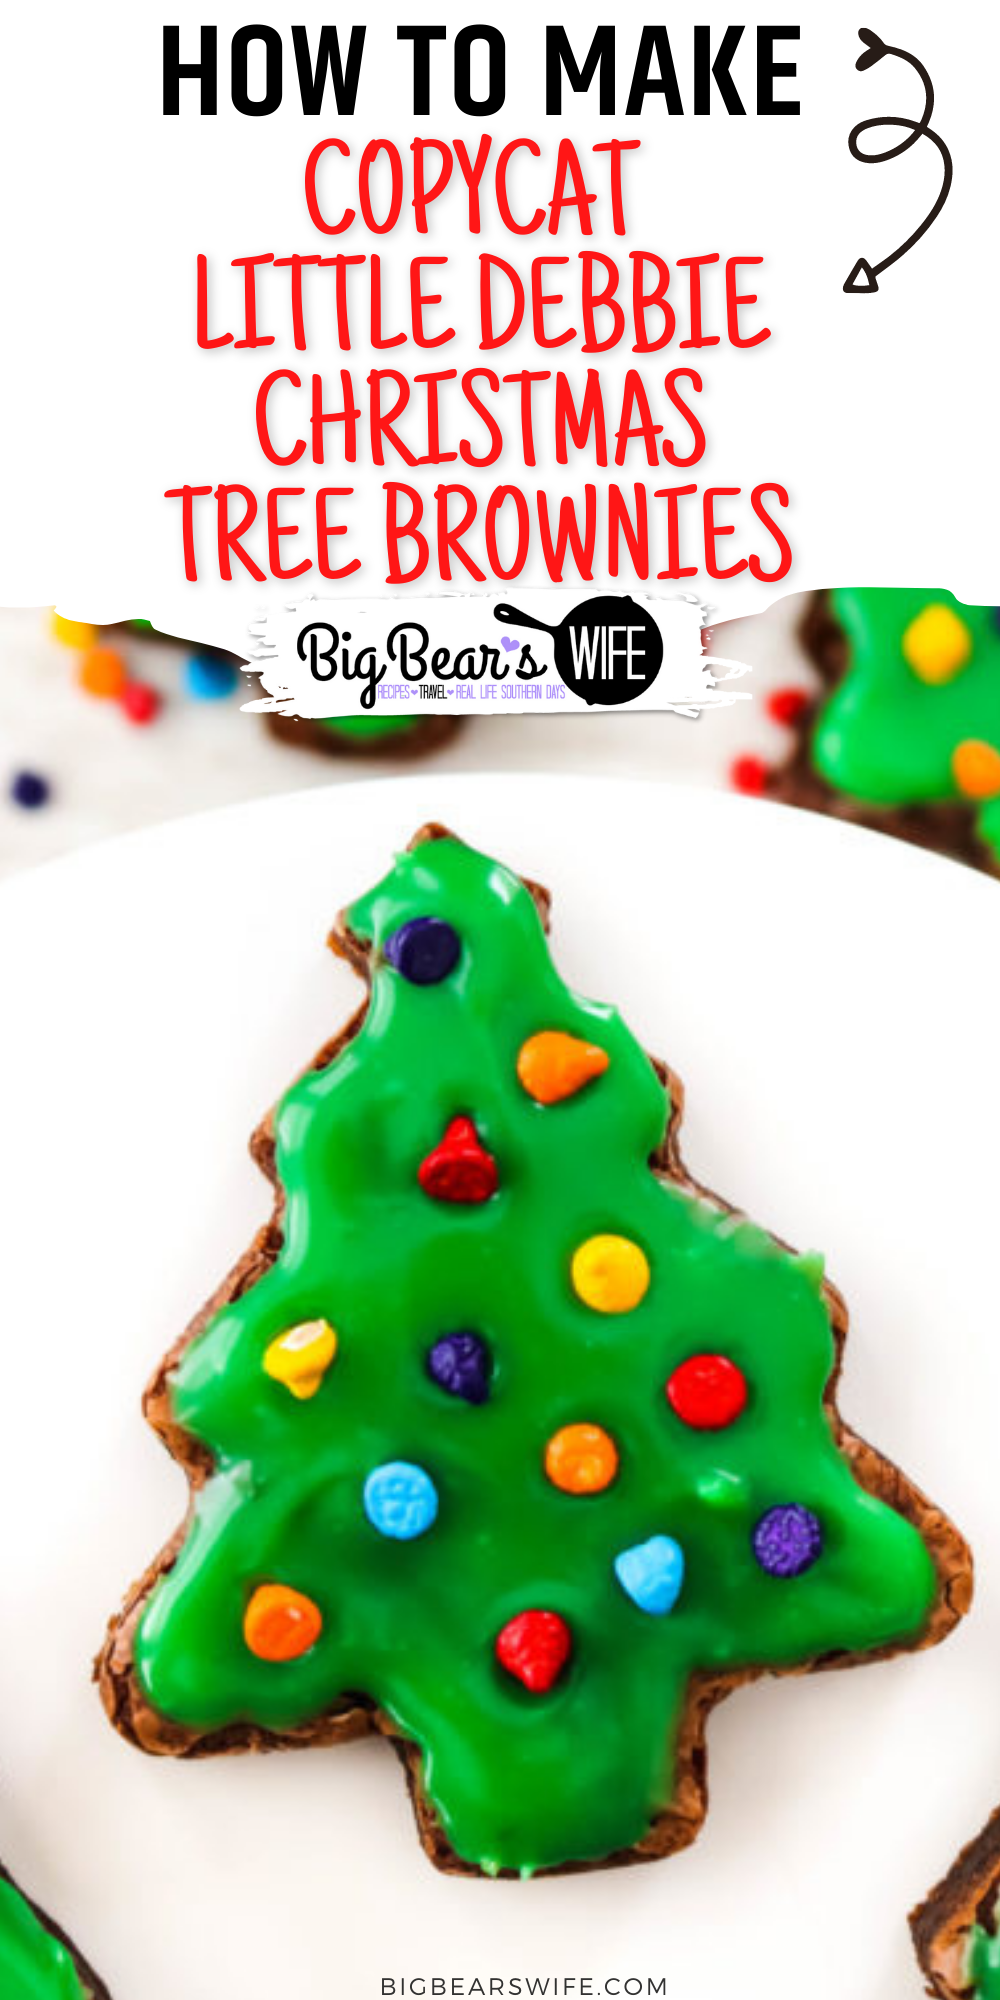 Little Debbie's Christmas Tree Brownies® are a nostalgic seasonal favorite. Jump in the kitchen and let's bake up some homemade brownie trees and decorate them with green ganache and candy-coated chocolate chips to create our very own Copycat Little Debbie Christmas Tree Brownies. via @bigbearswife